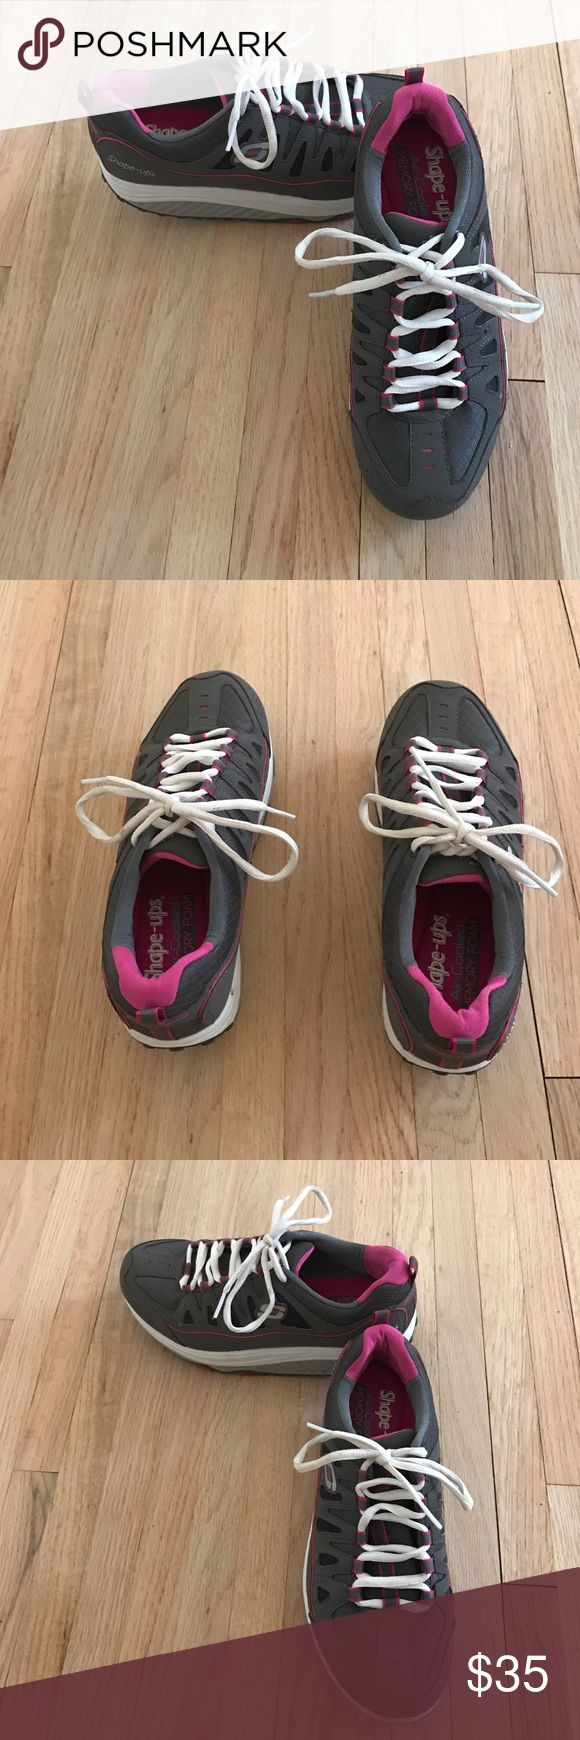 NWOT Skechers Shape-Ups Sneakers NWOT Skechers Air Cooled Memory Foam Shape-Up Sneakers. Size:6.5. Colors are gray pink & white. Pull on tab in back. Traction on bottom for safety. White laces. Very comfortable! NO TRADES. Skechers Shoes Sneakers